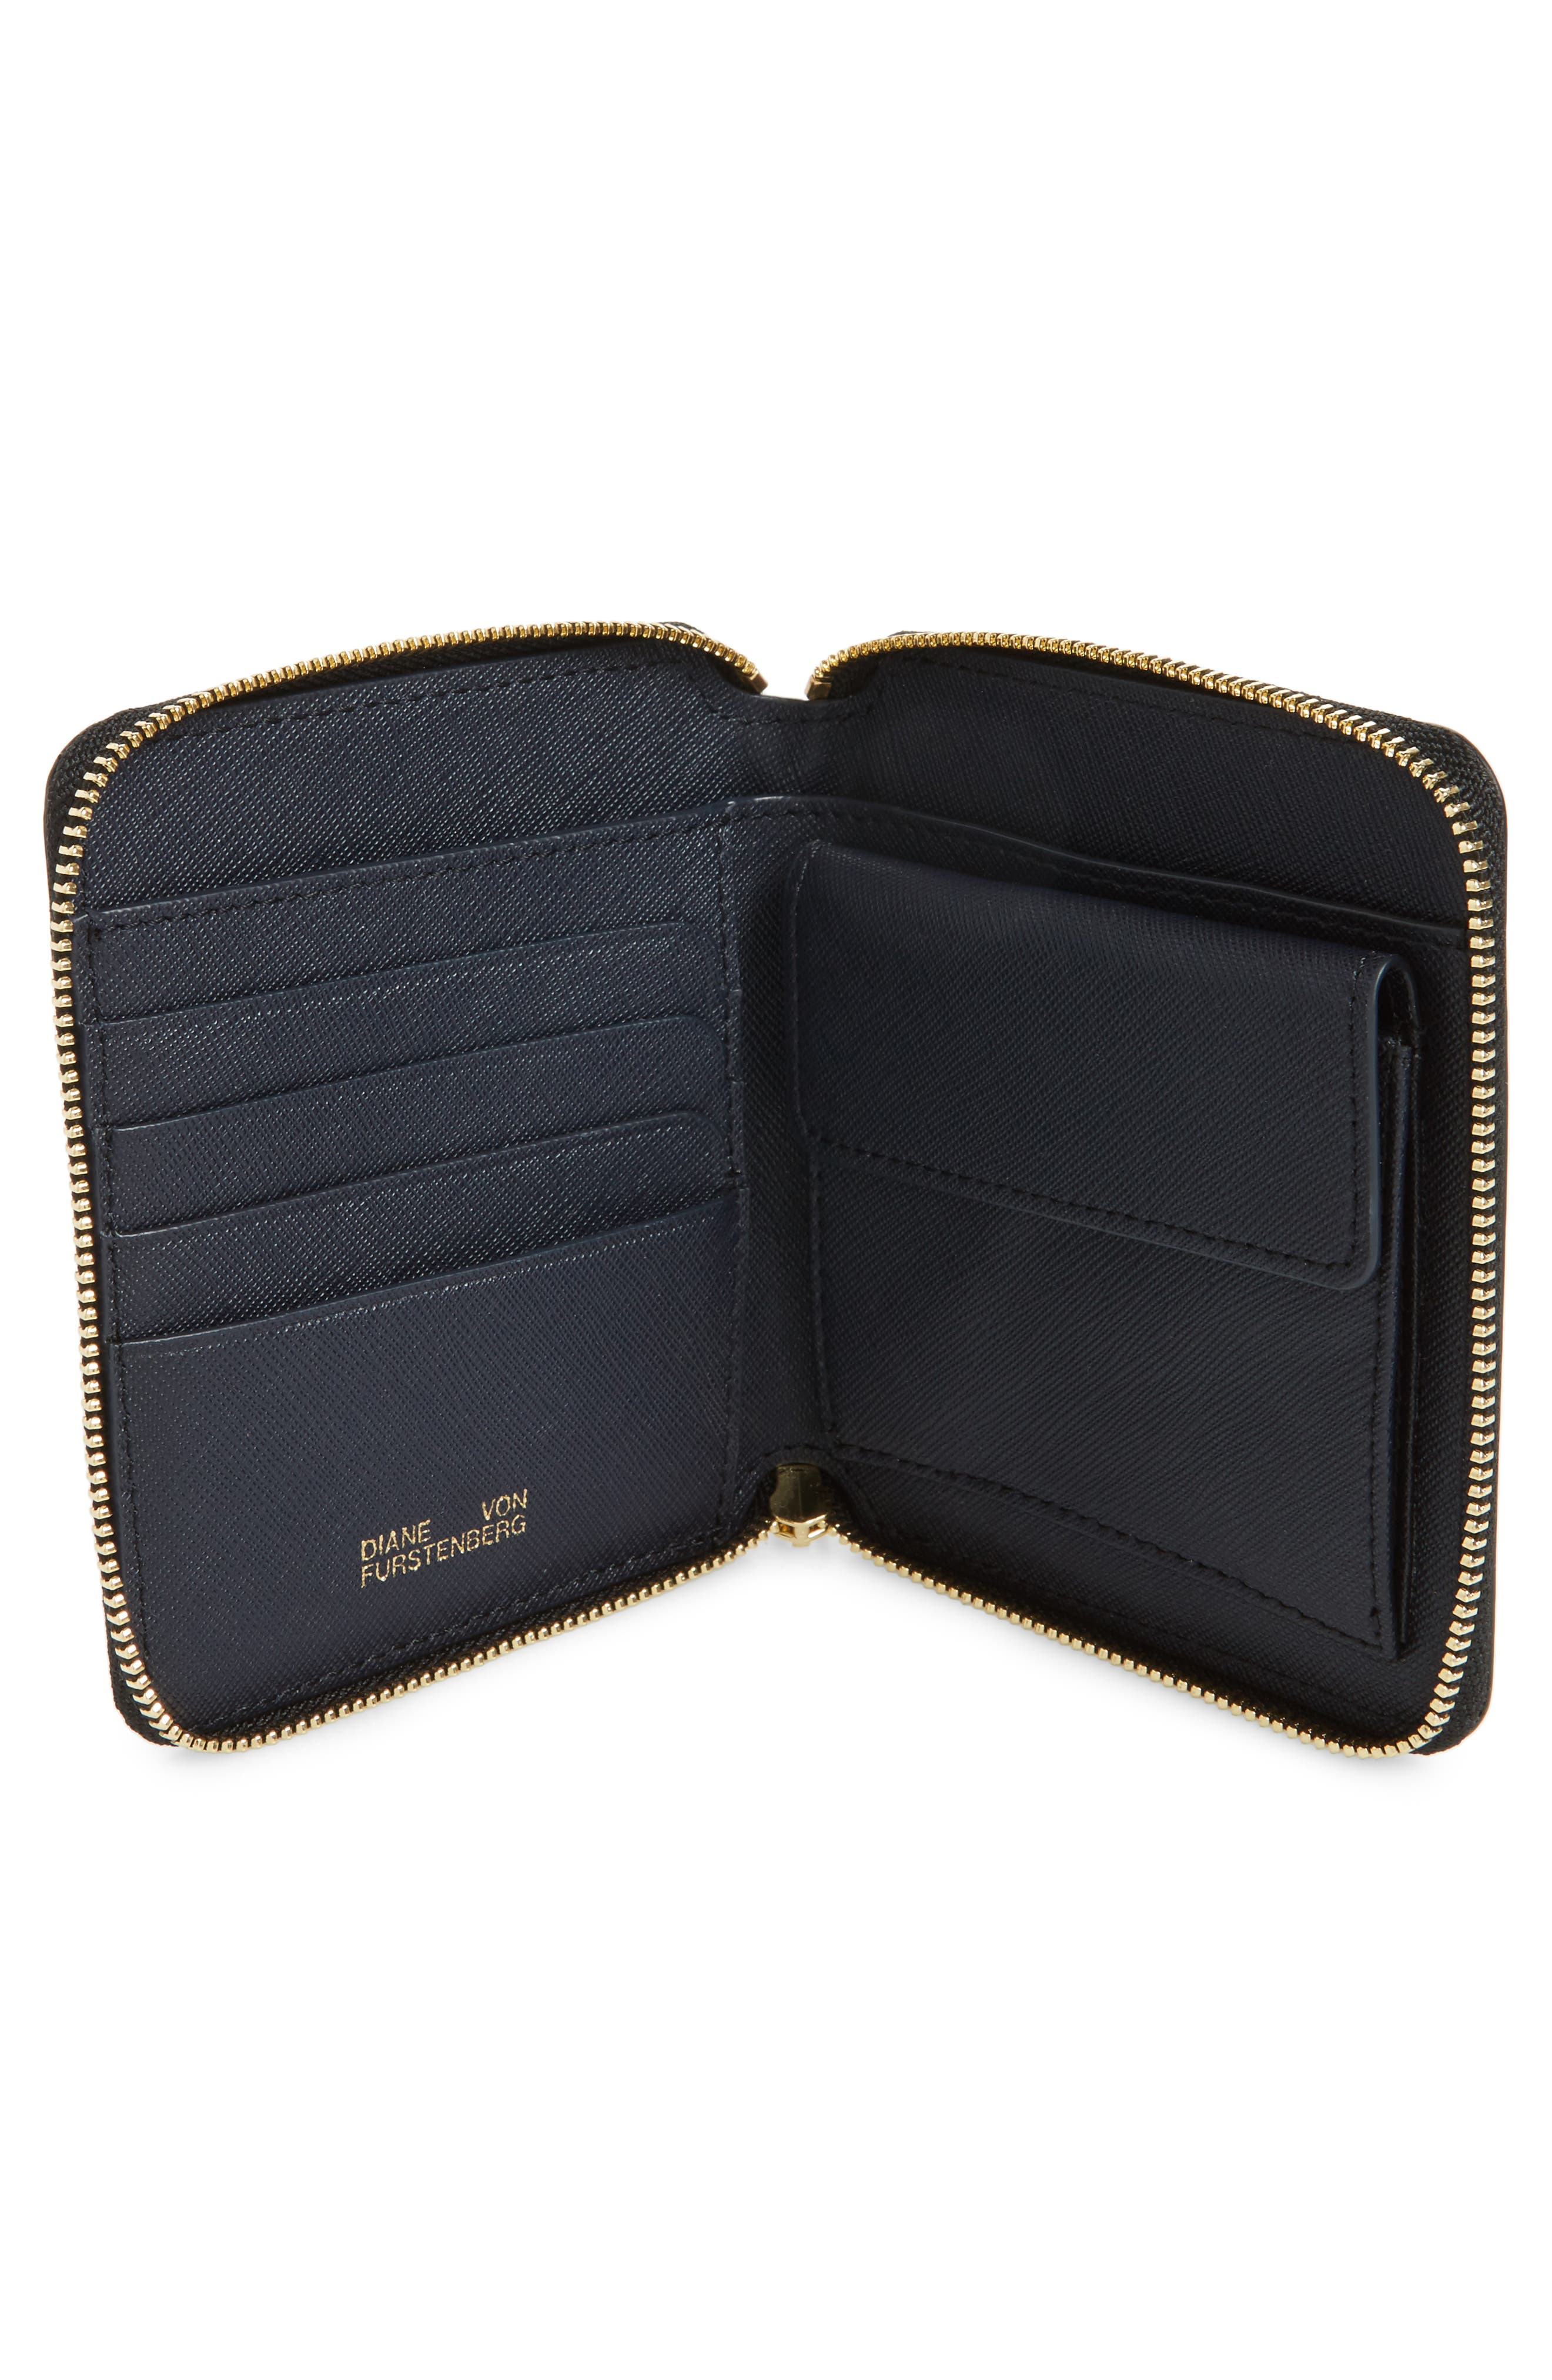 Small Leather Zip Wallet,                             Alternate thumbnail 2, color,                             001